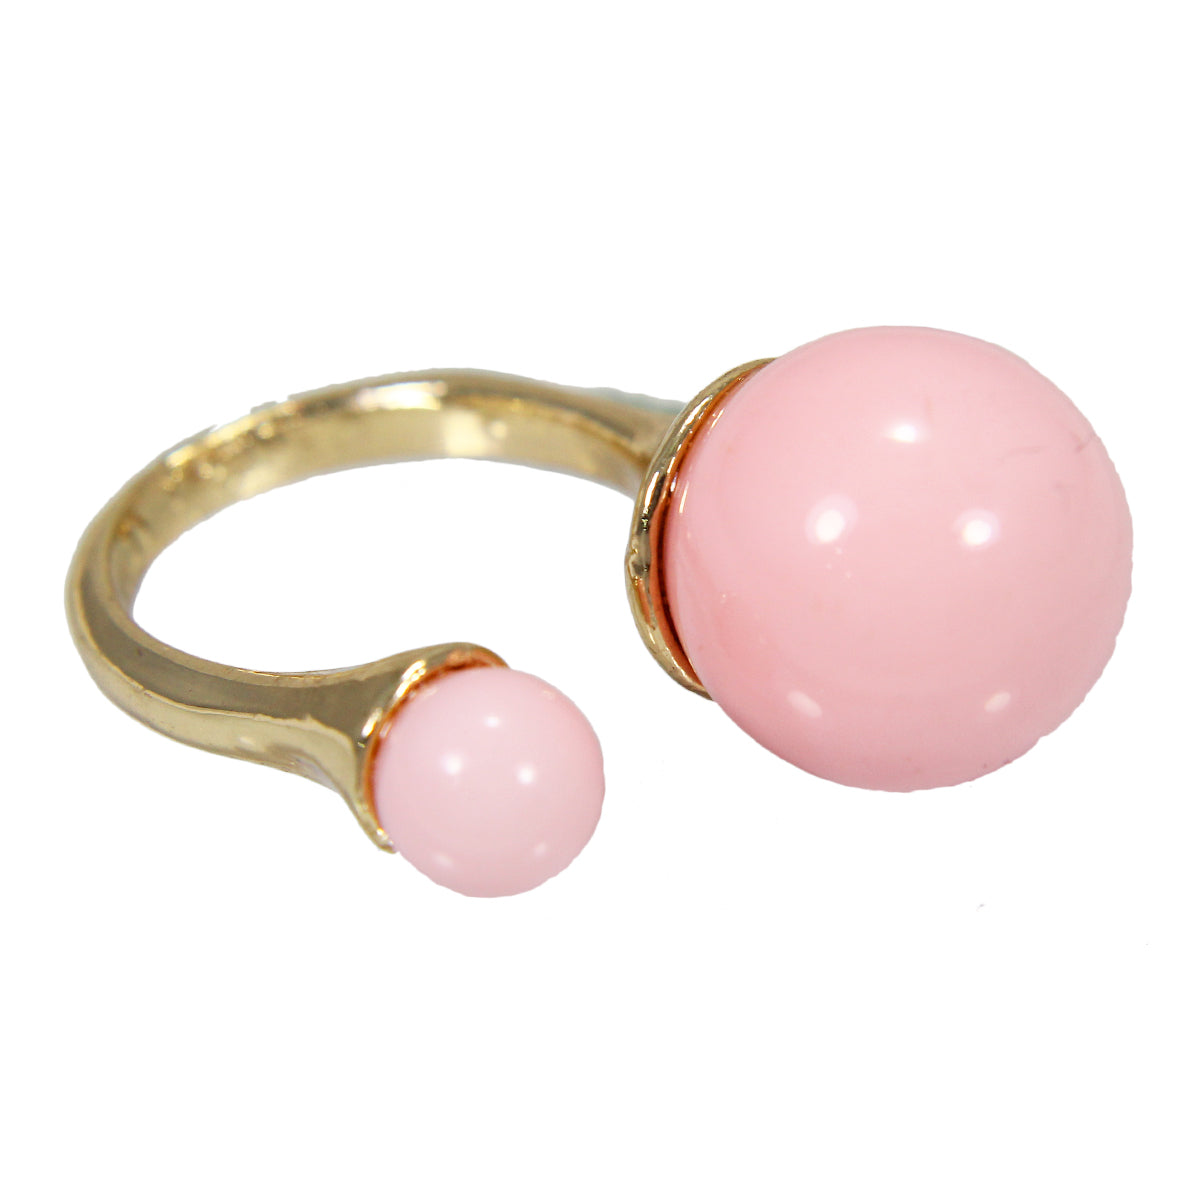 Beautiful Bohemian Pink Golden Bubble Droplet Shaped  Design Ring with Tibetian  stone Work